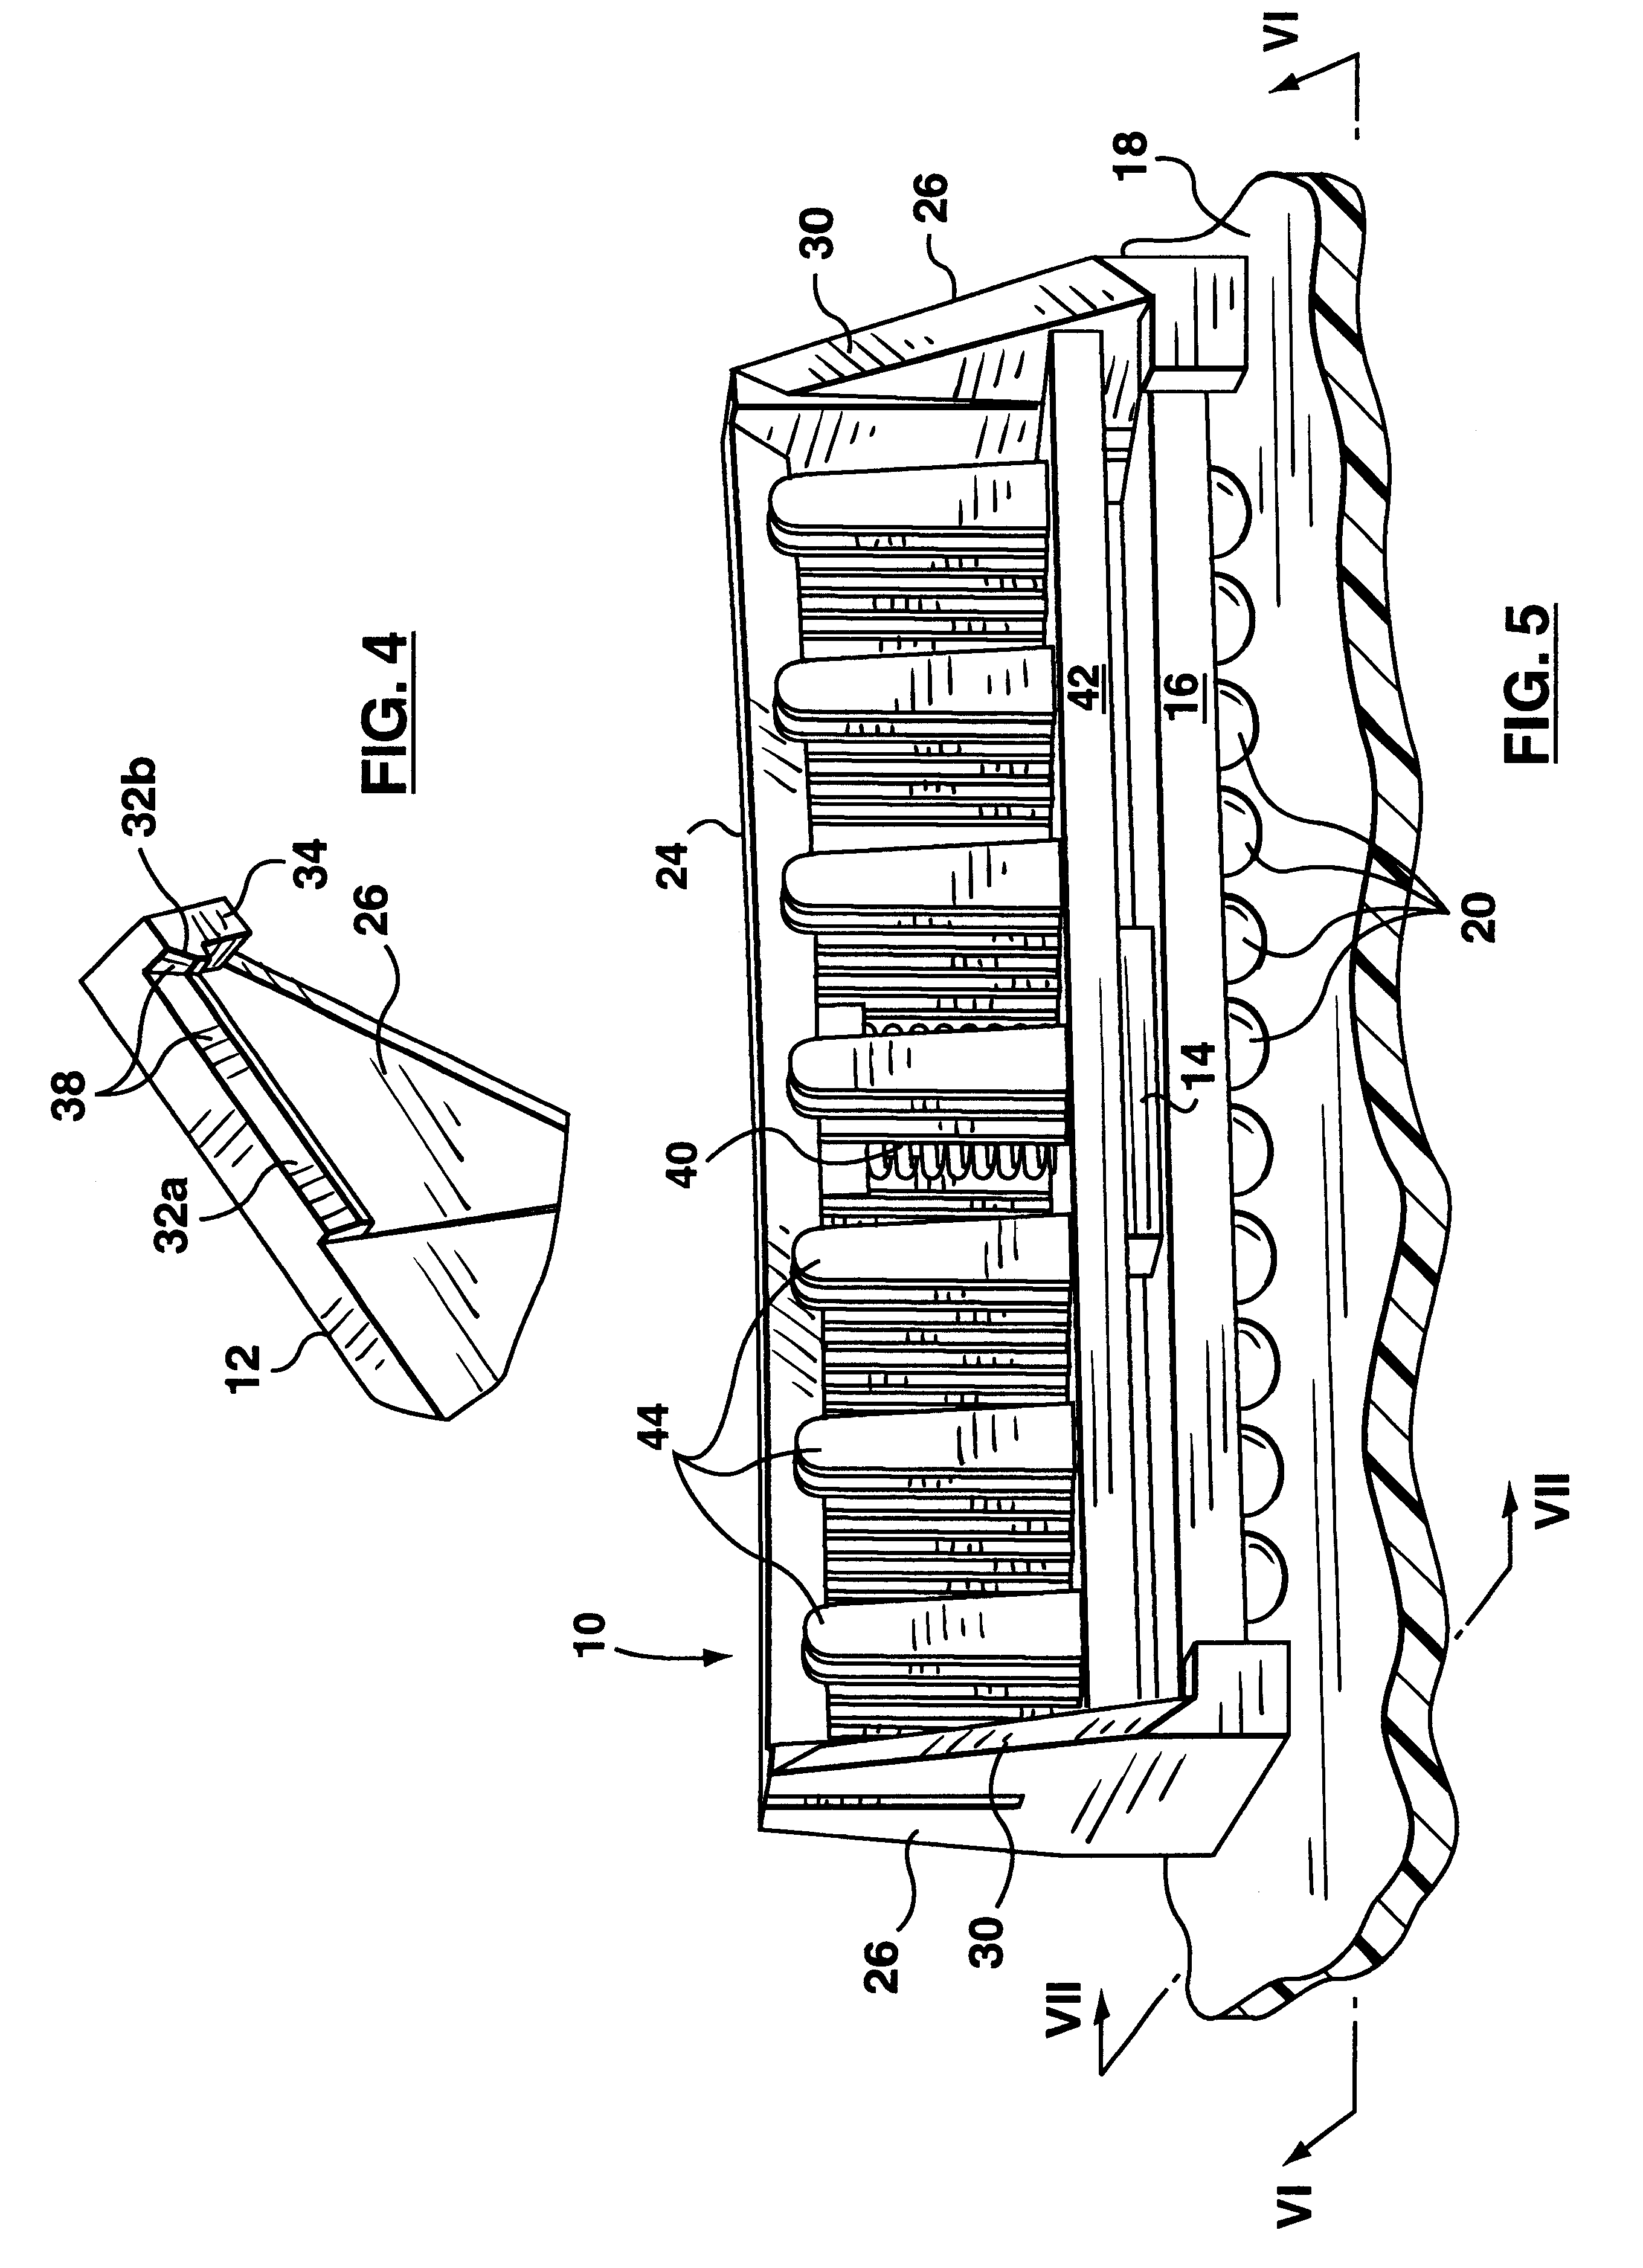 patent us6462951 - securing heat sinks to electronic components